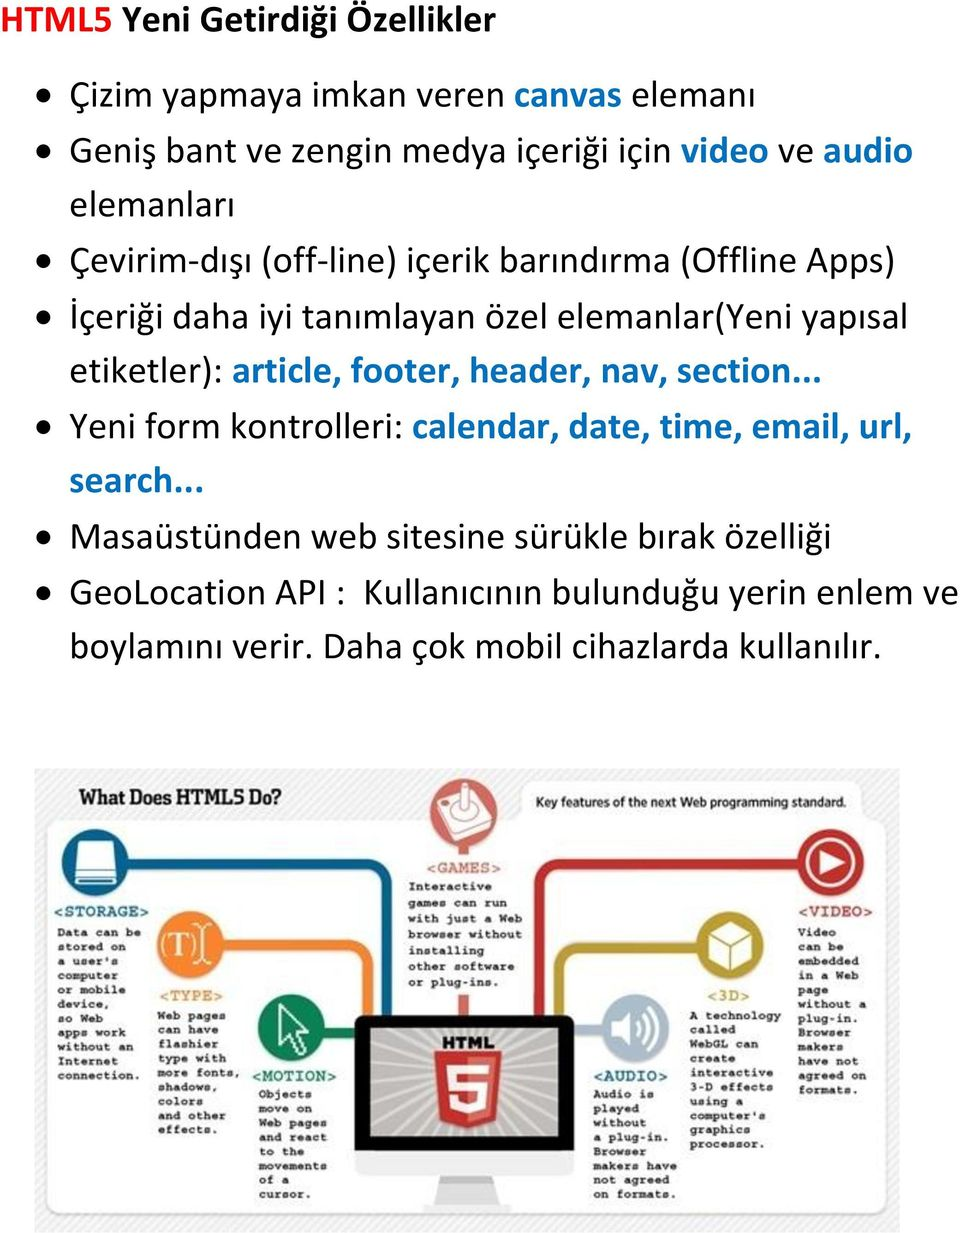 etiketler): article, footer, header, nav, section... Yeni form kontrolleri: calendar, date, time, email, url, search.